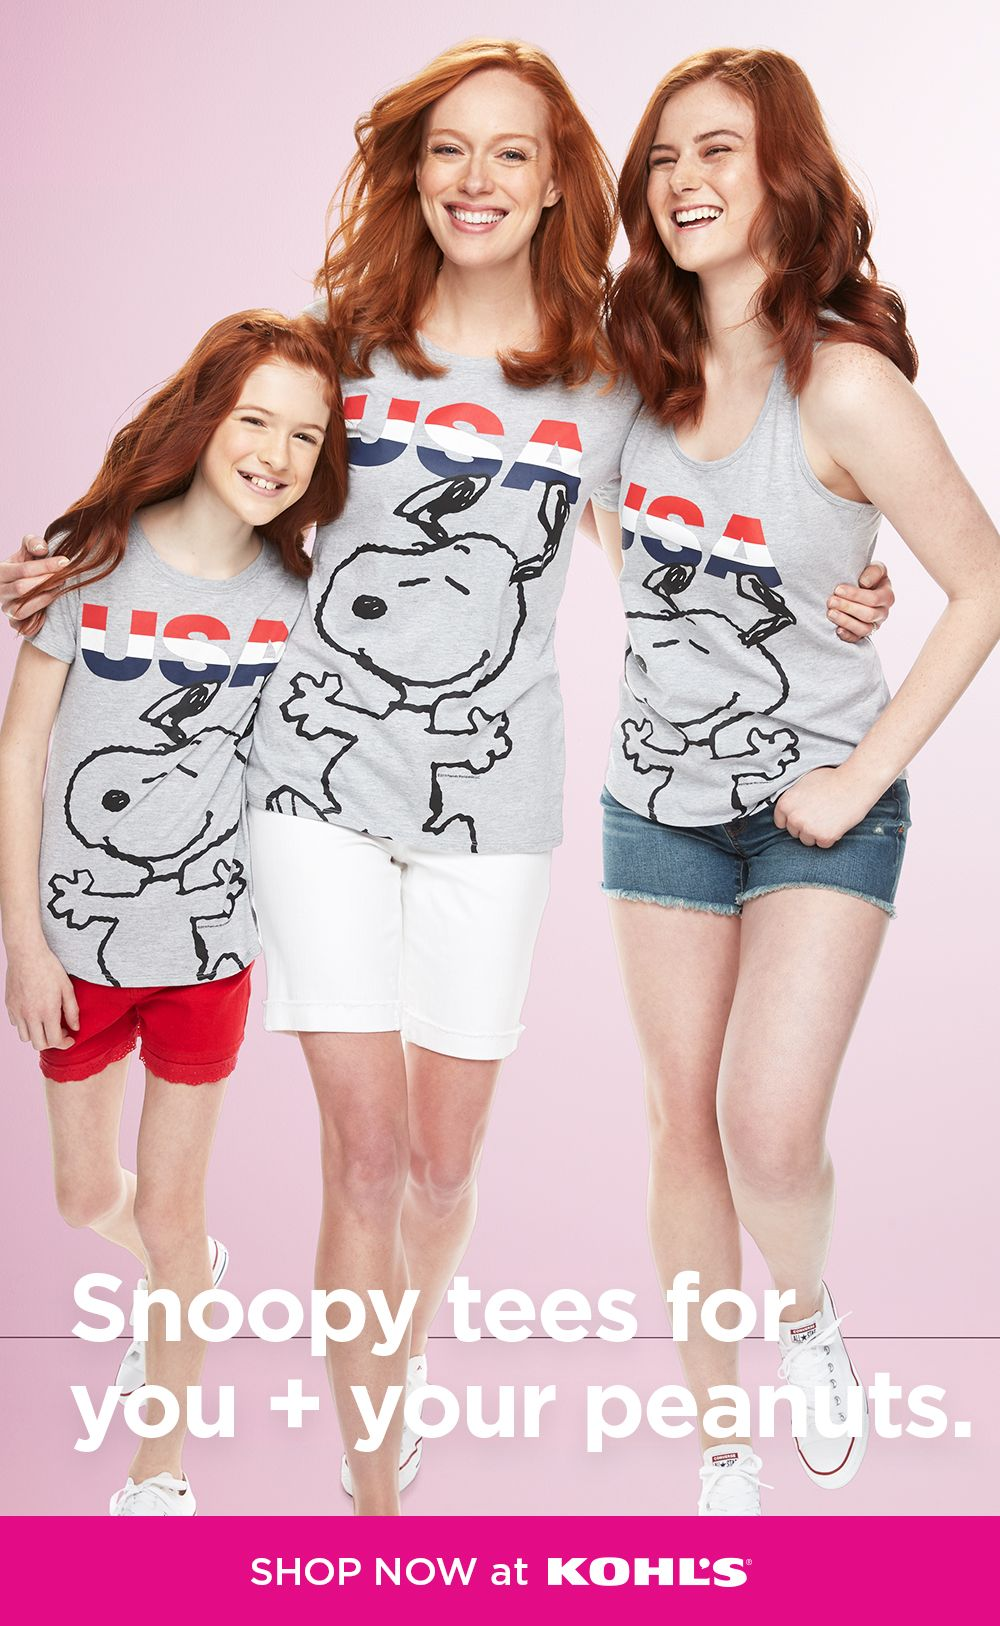 Find striped Peanuts tees for the family at Kohl's